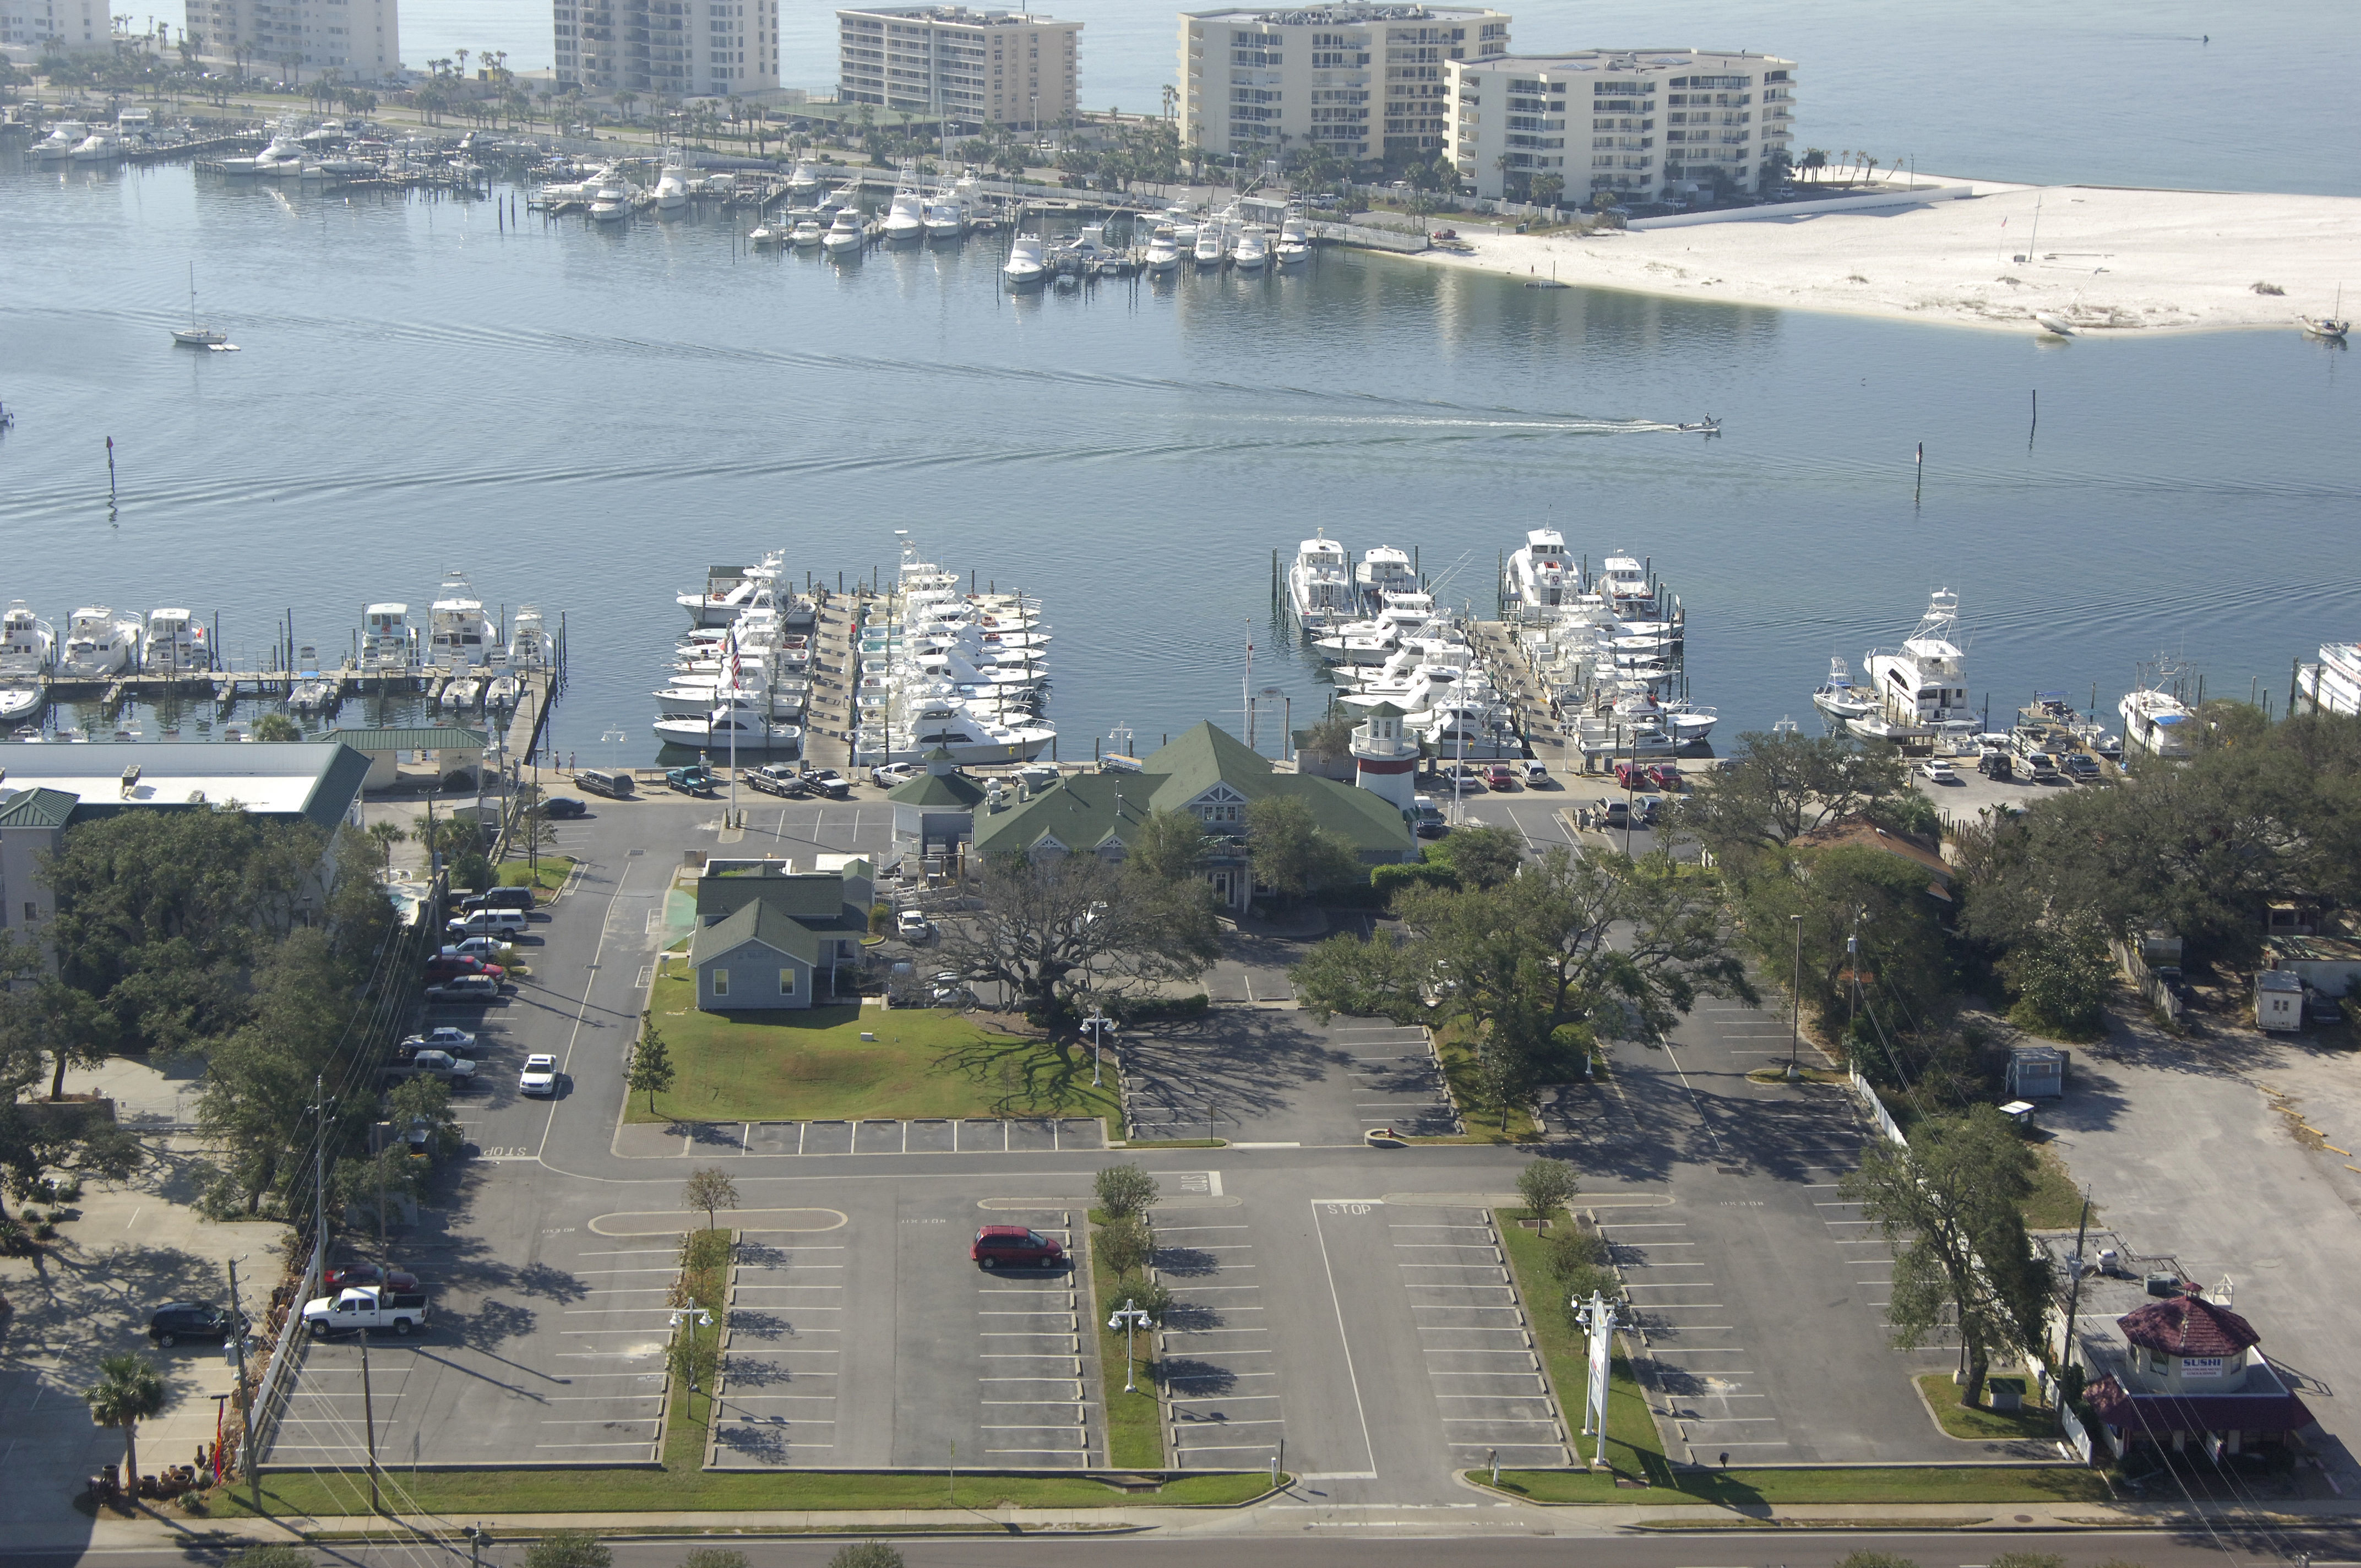 Destin fishing fleet marina in destin fl united states for Fishing destin fl